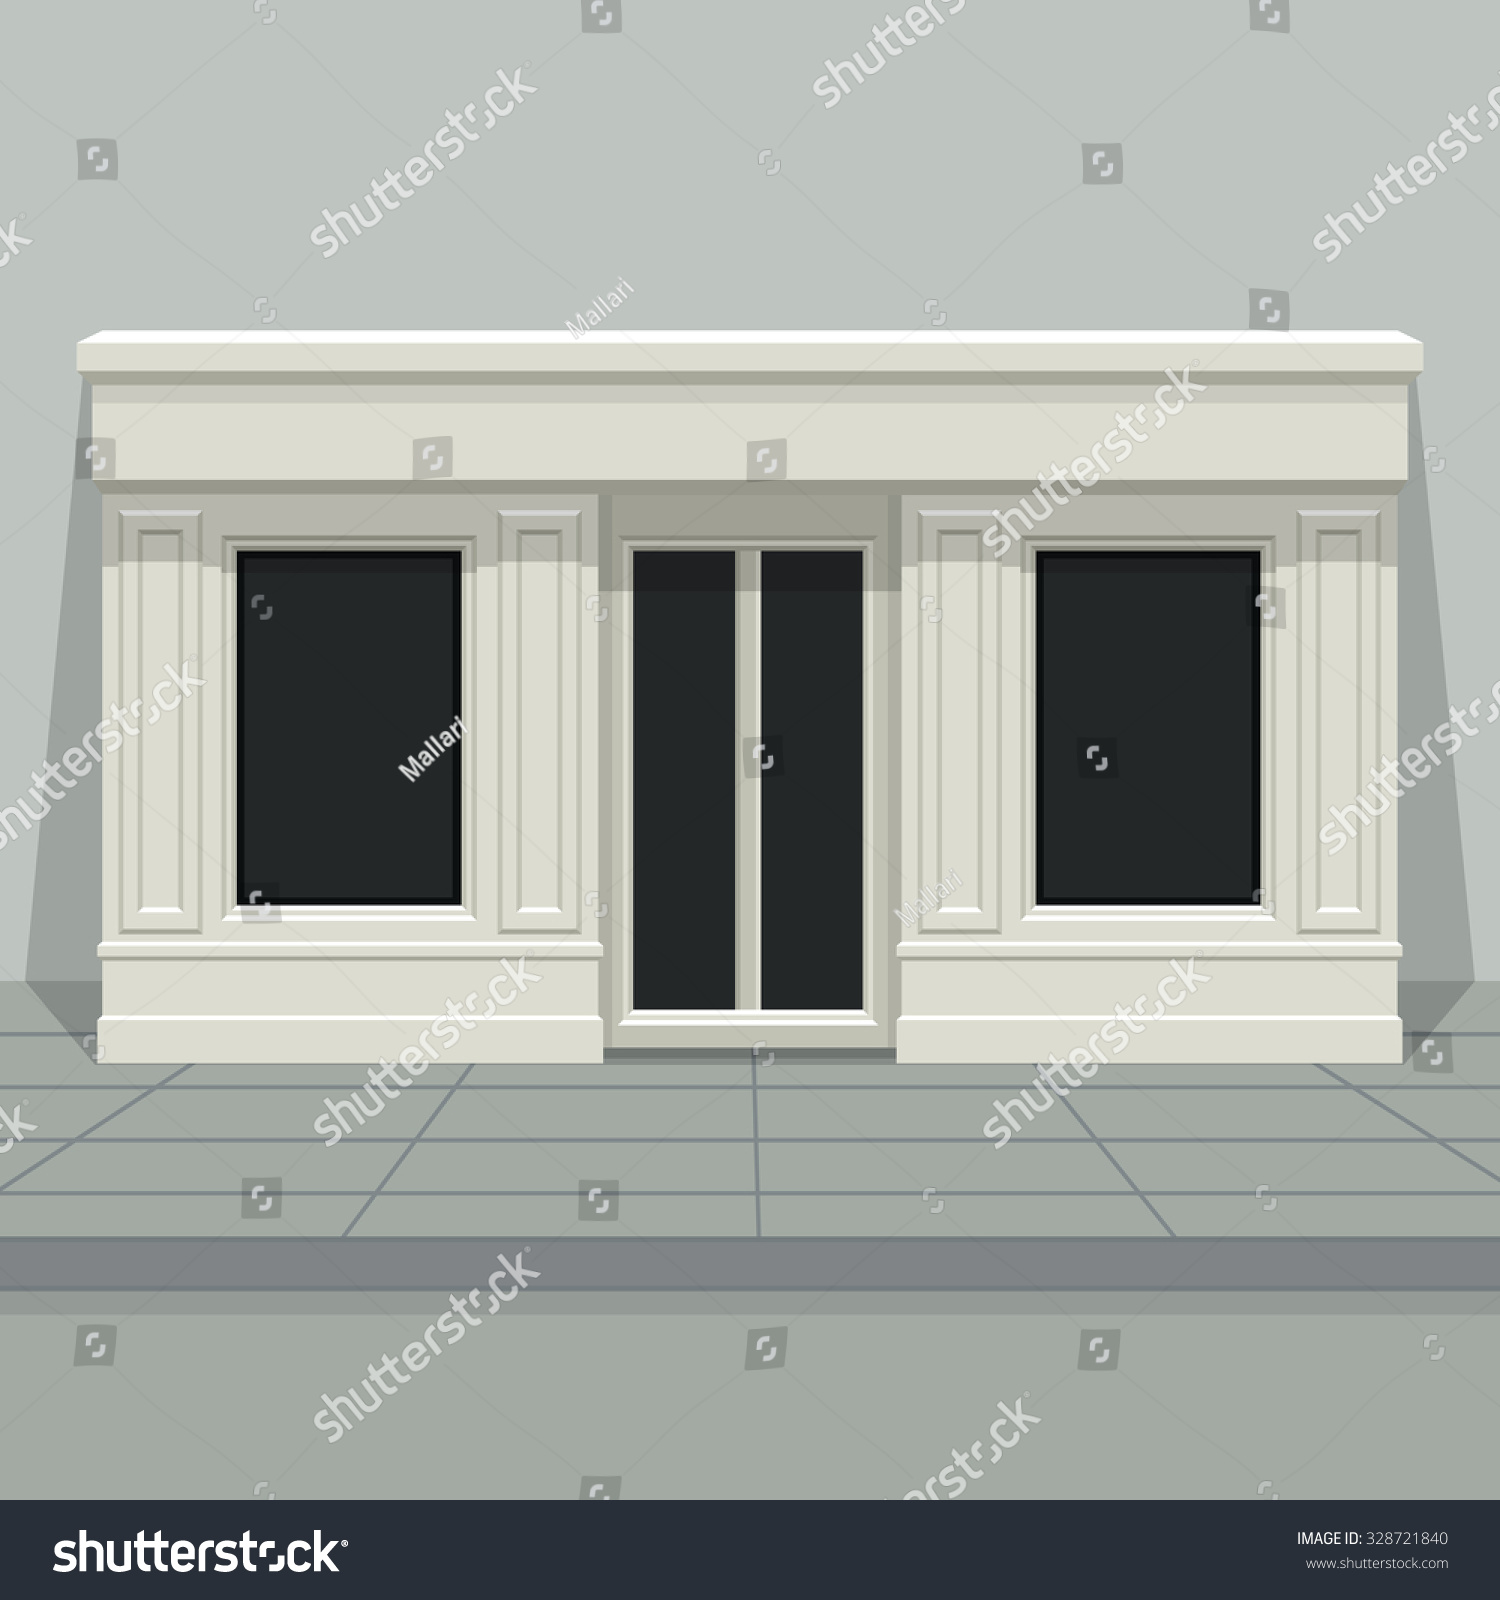 facade shop store boutique glass windows stock vector 328721840 shutterstock. Black Bedroom Furniture Sets. Home Design Ideas